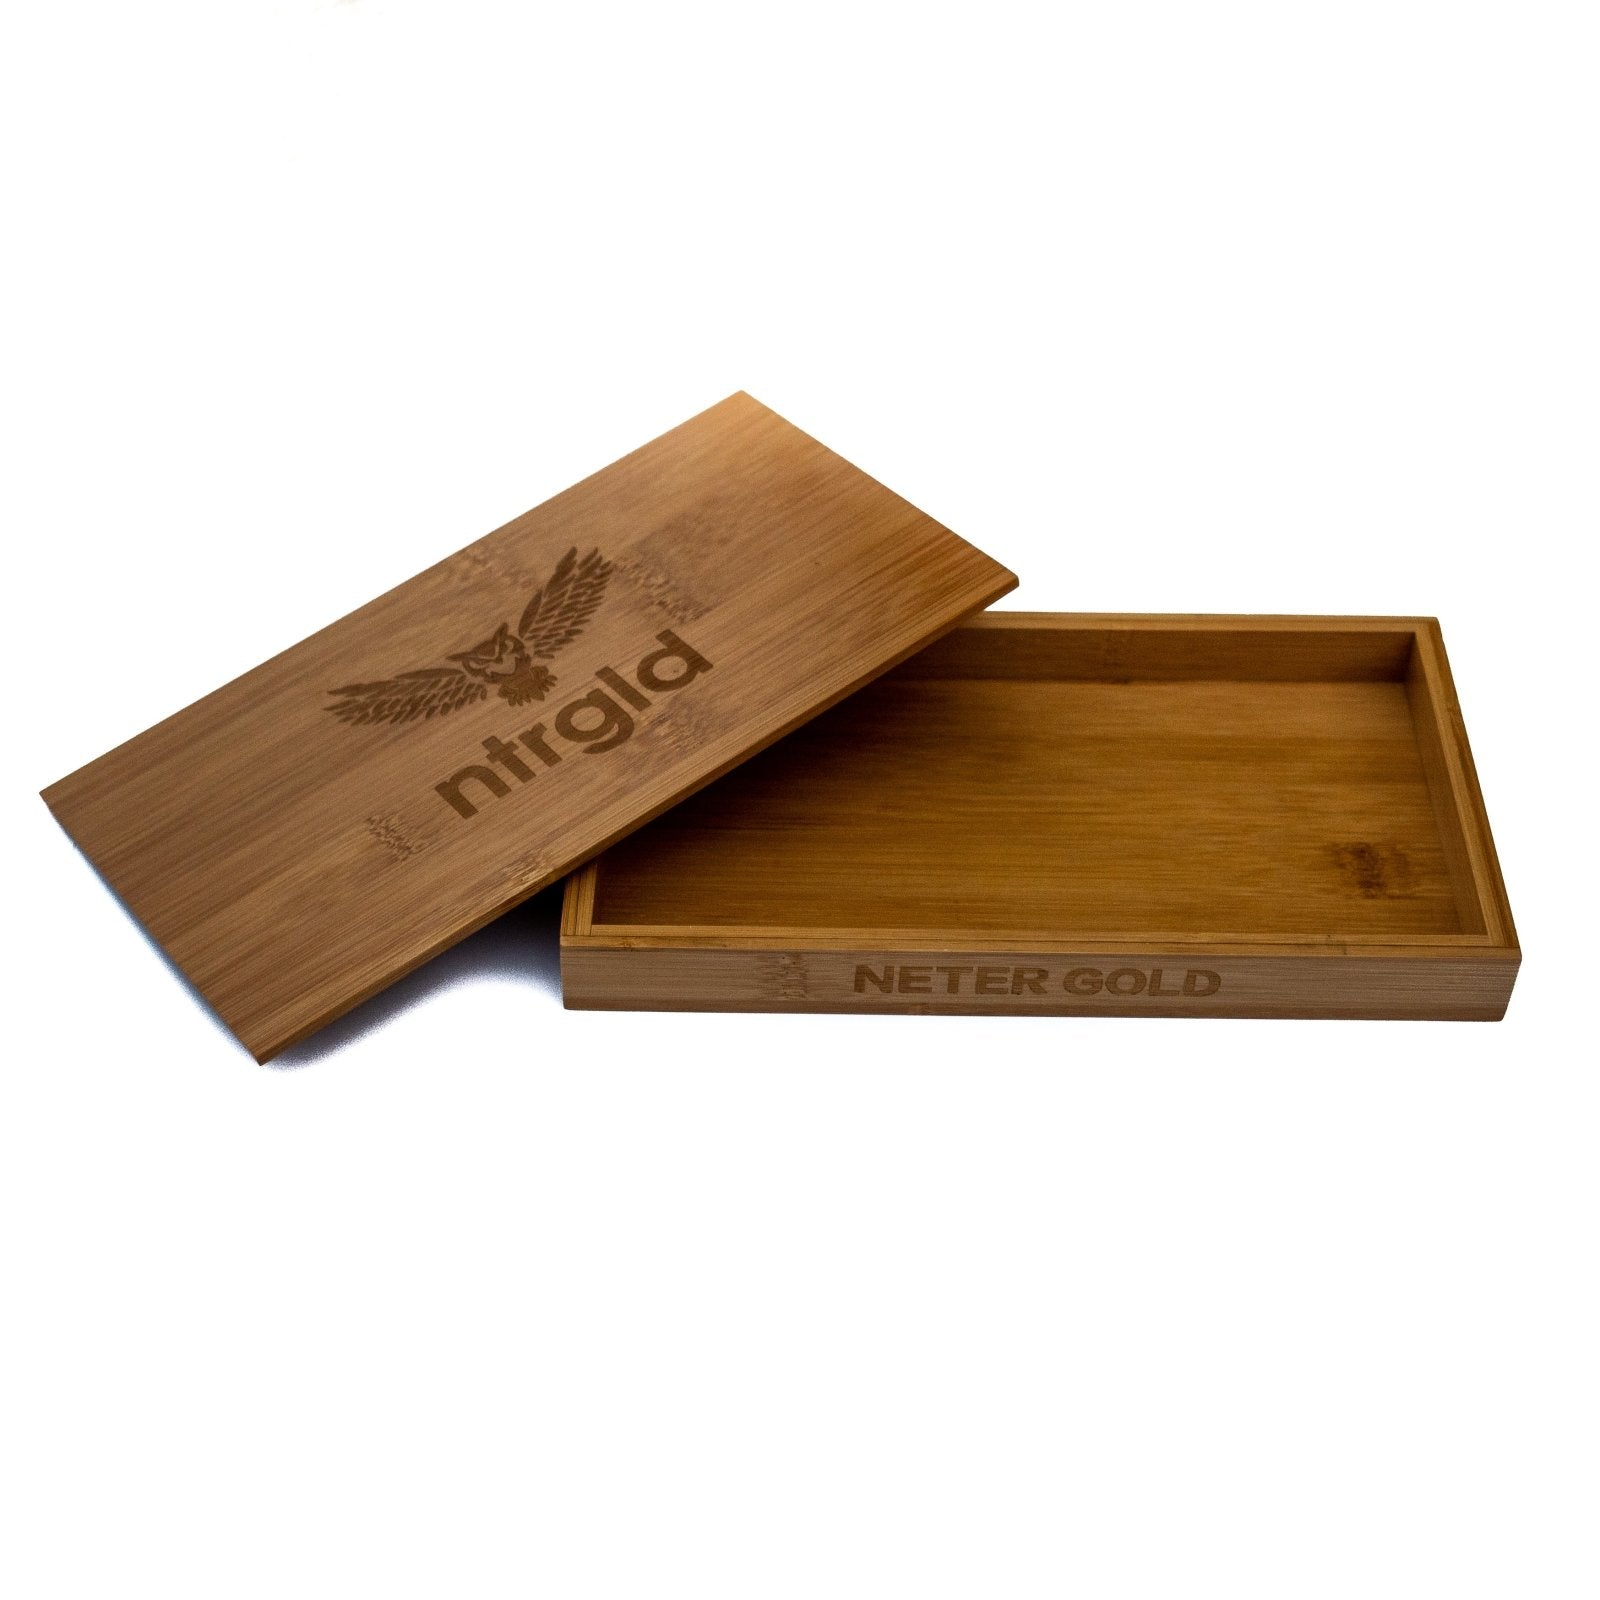 The Box You Need For Your Comb! - Deeper Box - Neter Gold - NTRGLD